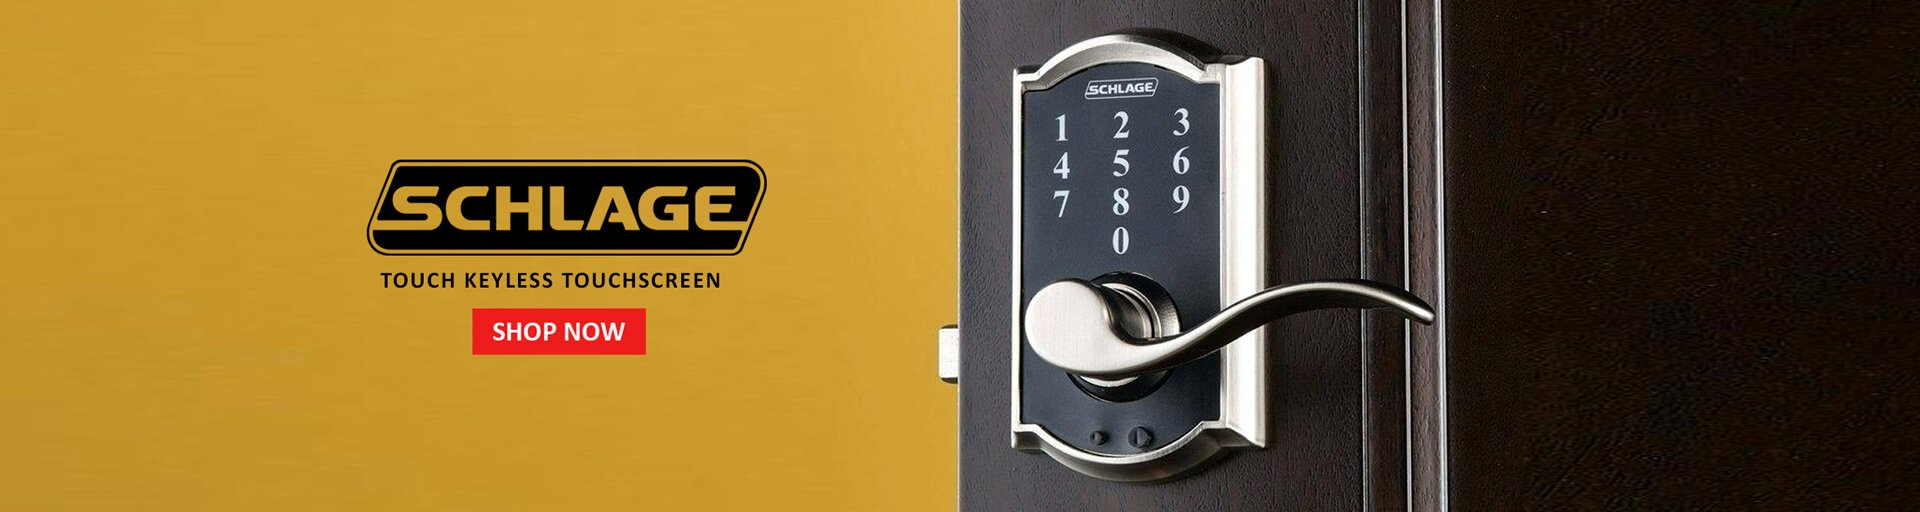 Schlage Touch Keyless Touchscreen Lever with Camelot Trim and Accent Lever